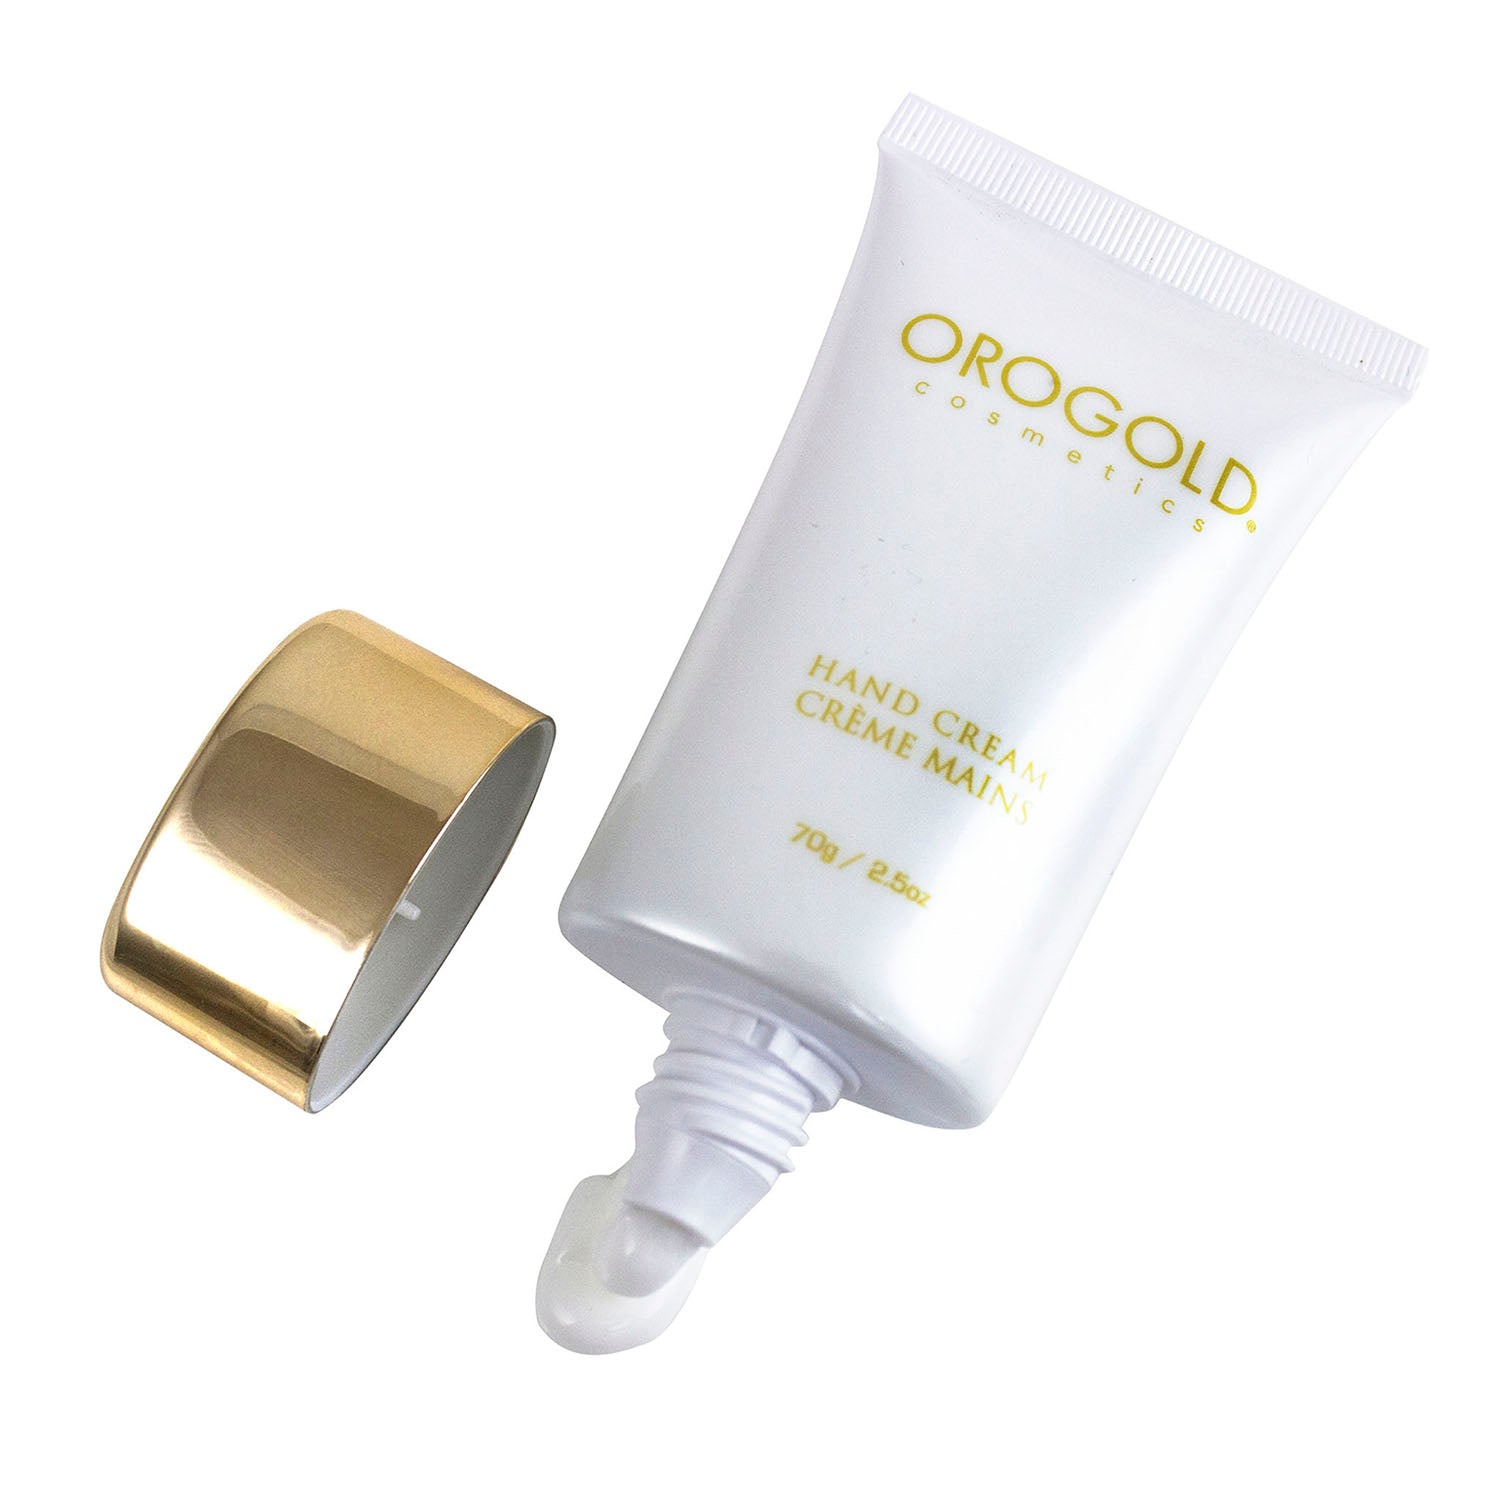 orogold travel size hand lotion